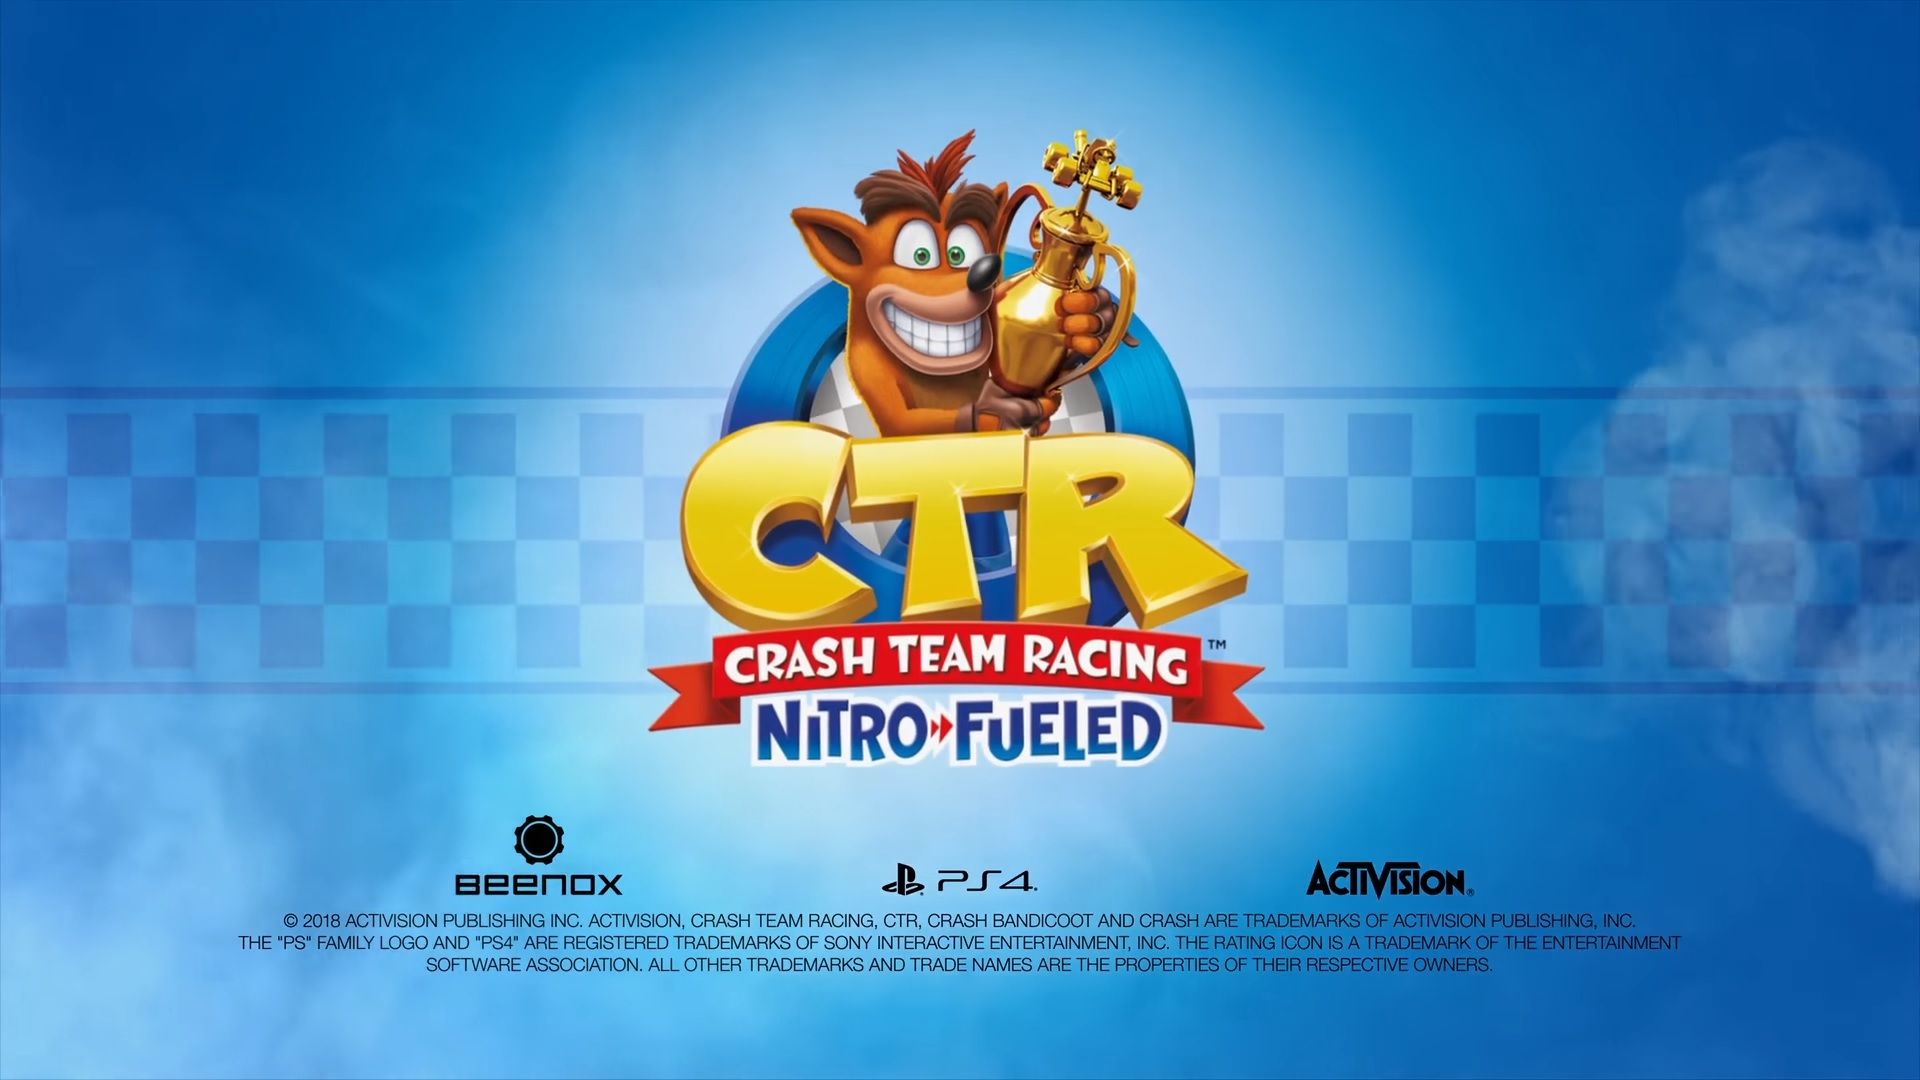 Crash Team Racing Nitro-Fueled Revs Up its Engine Once More